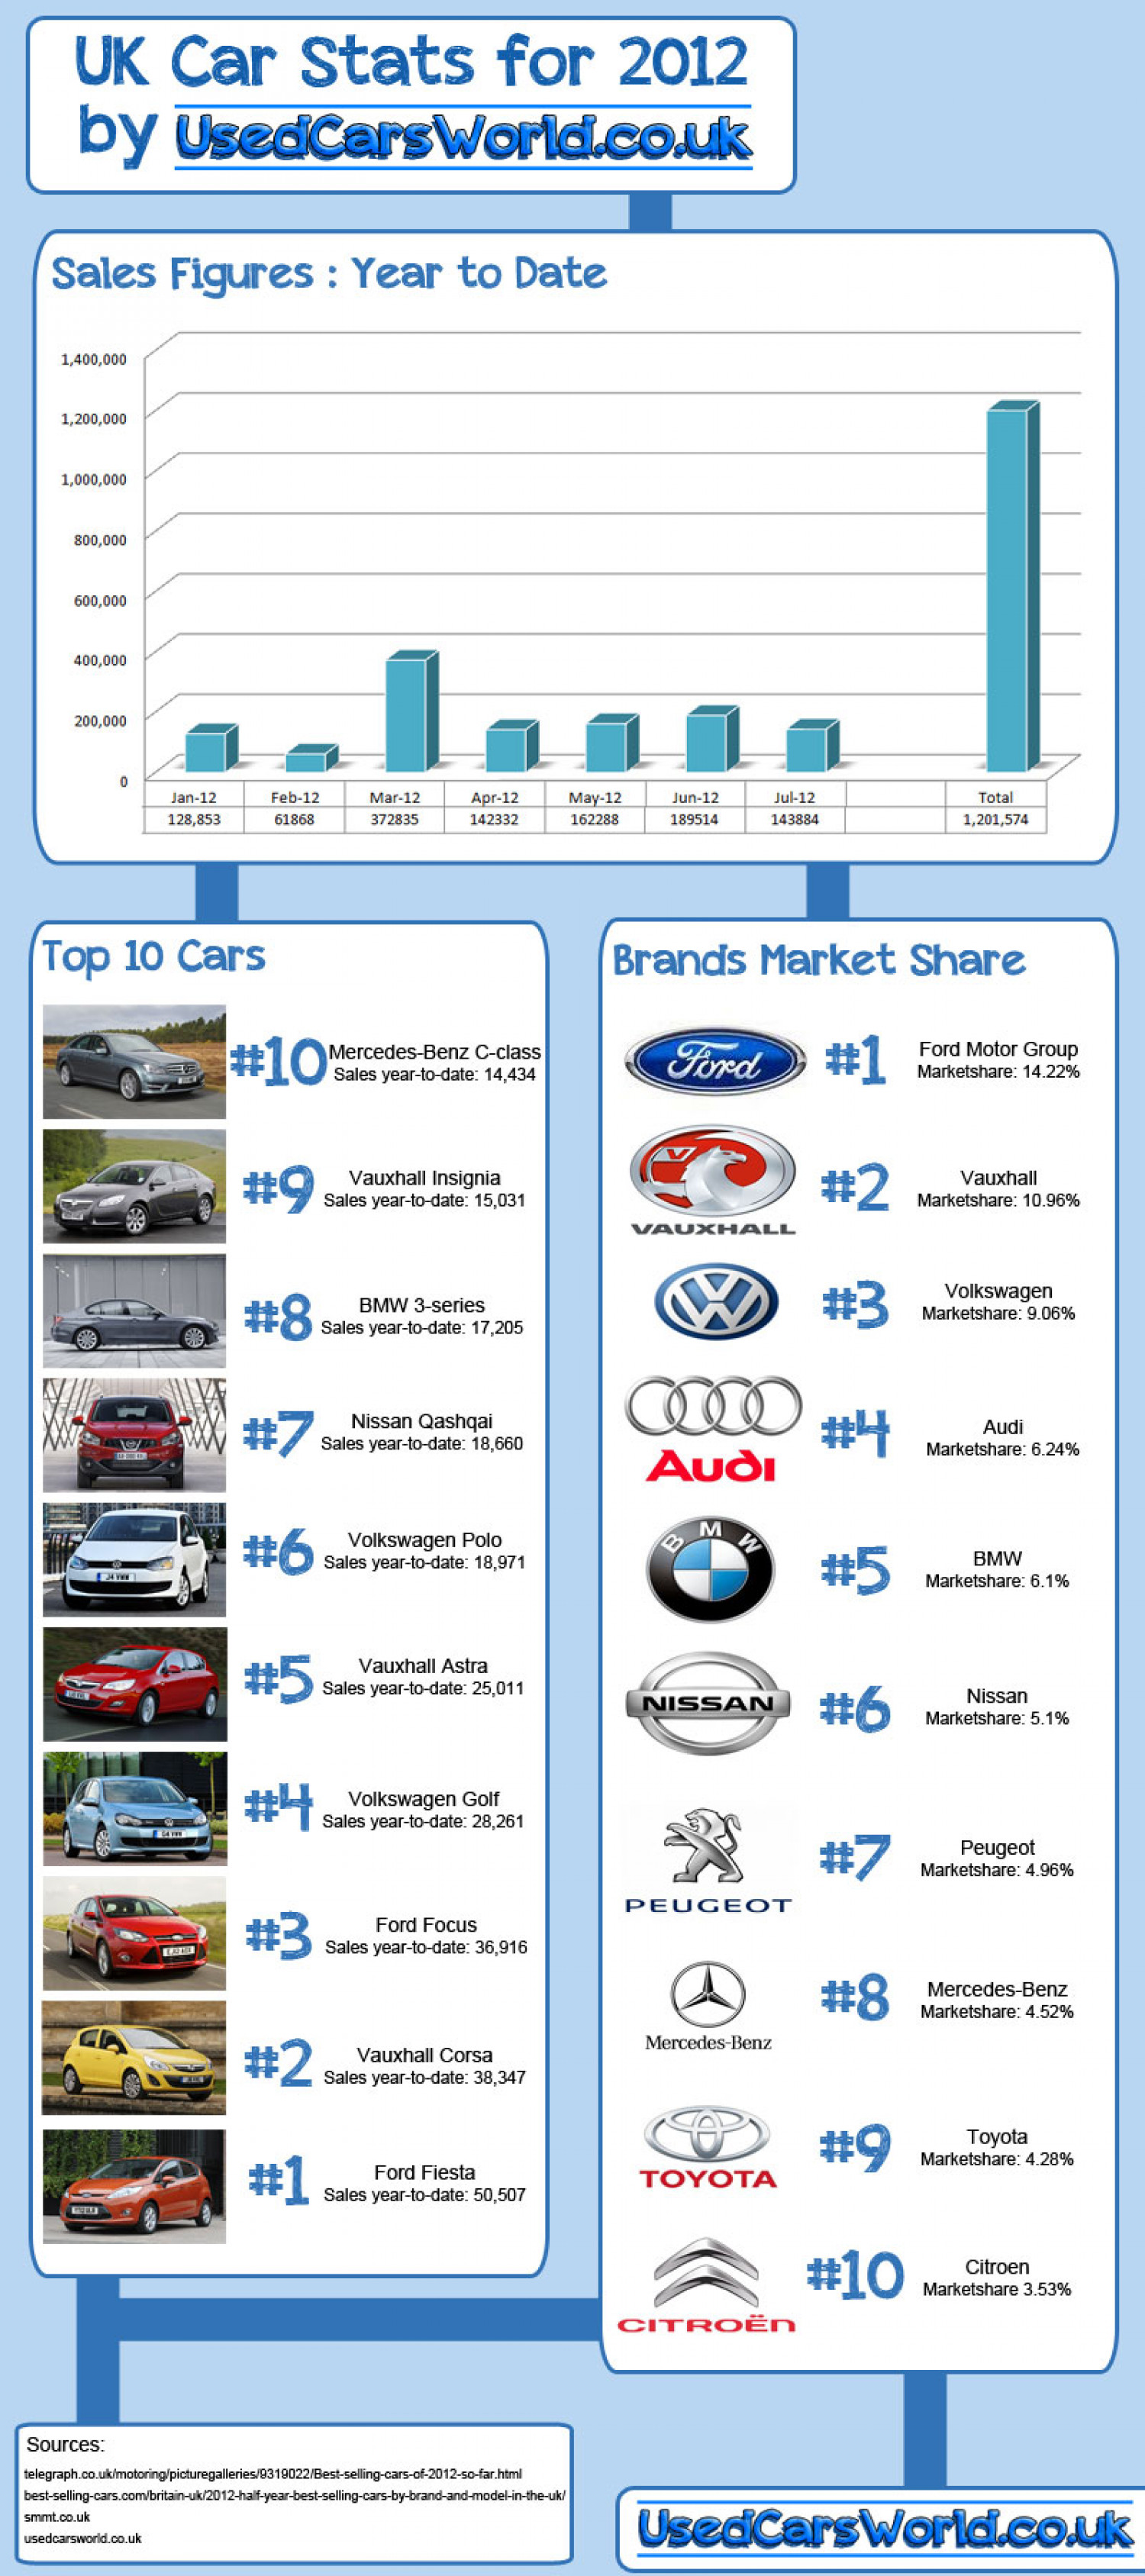 Car Sales Stats for the UK in 2012 Infographic